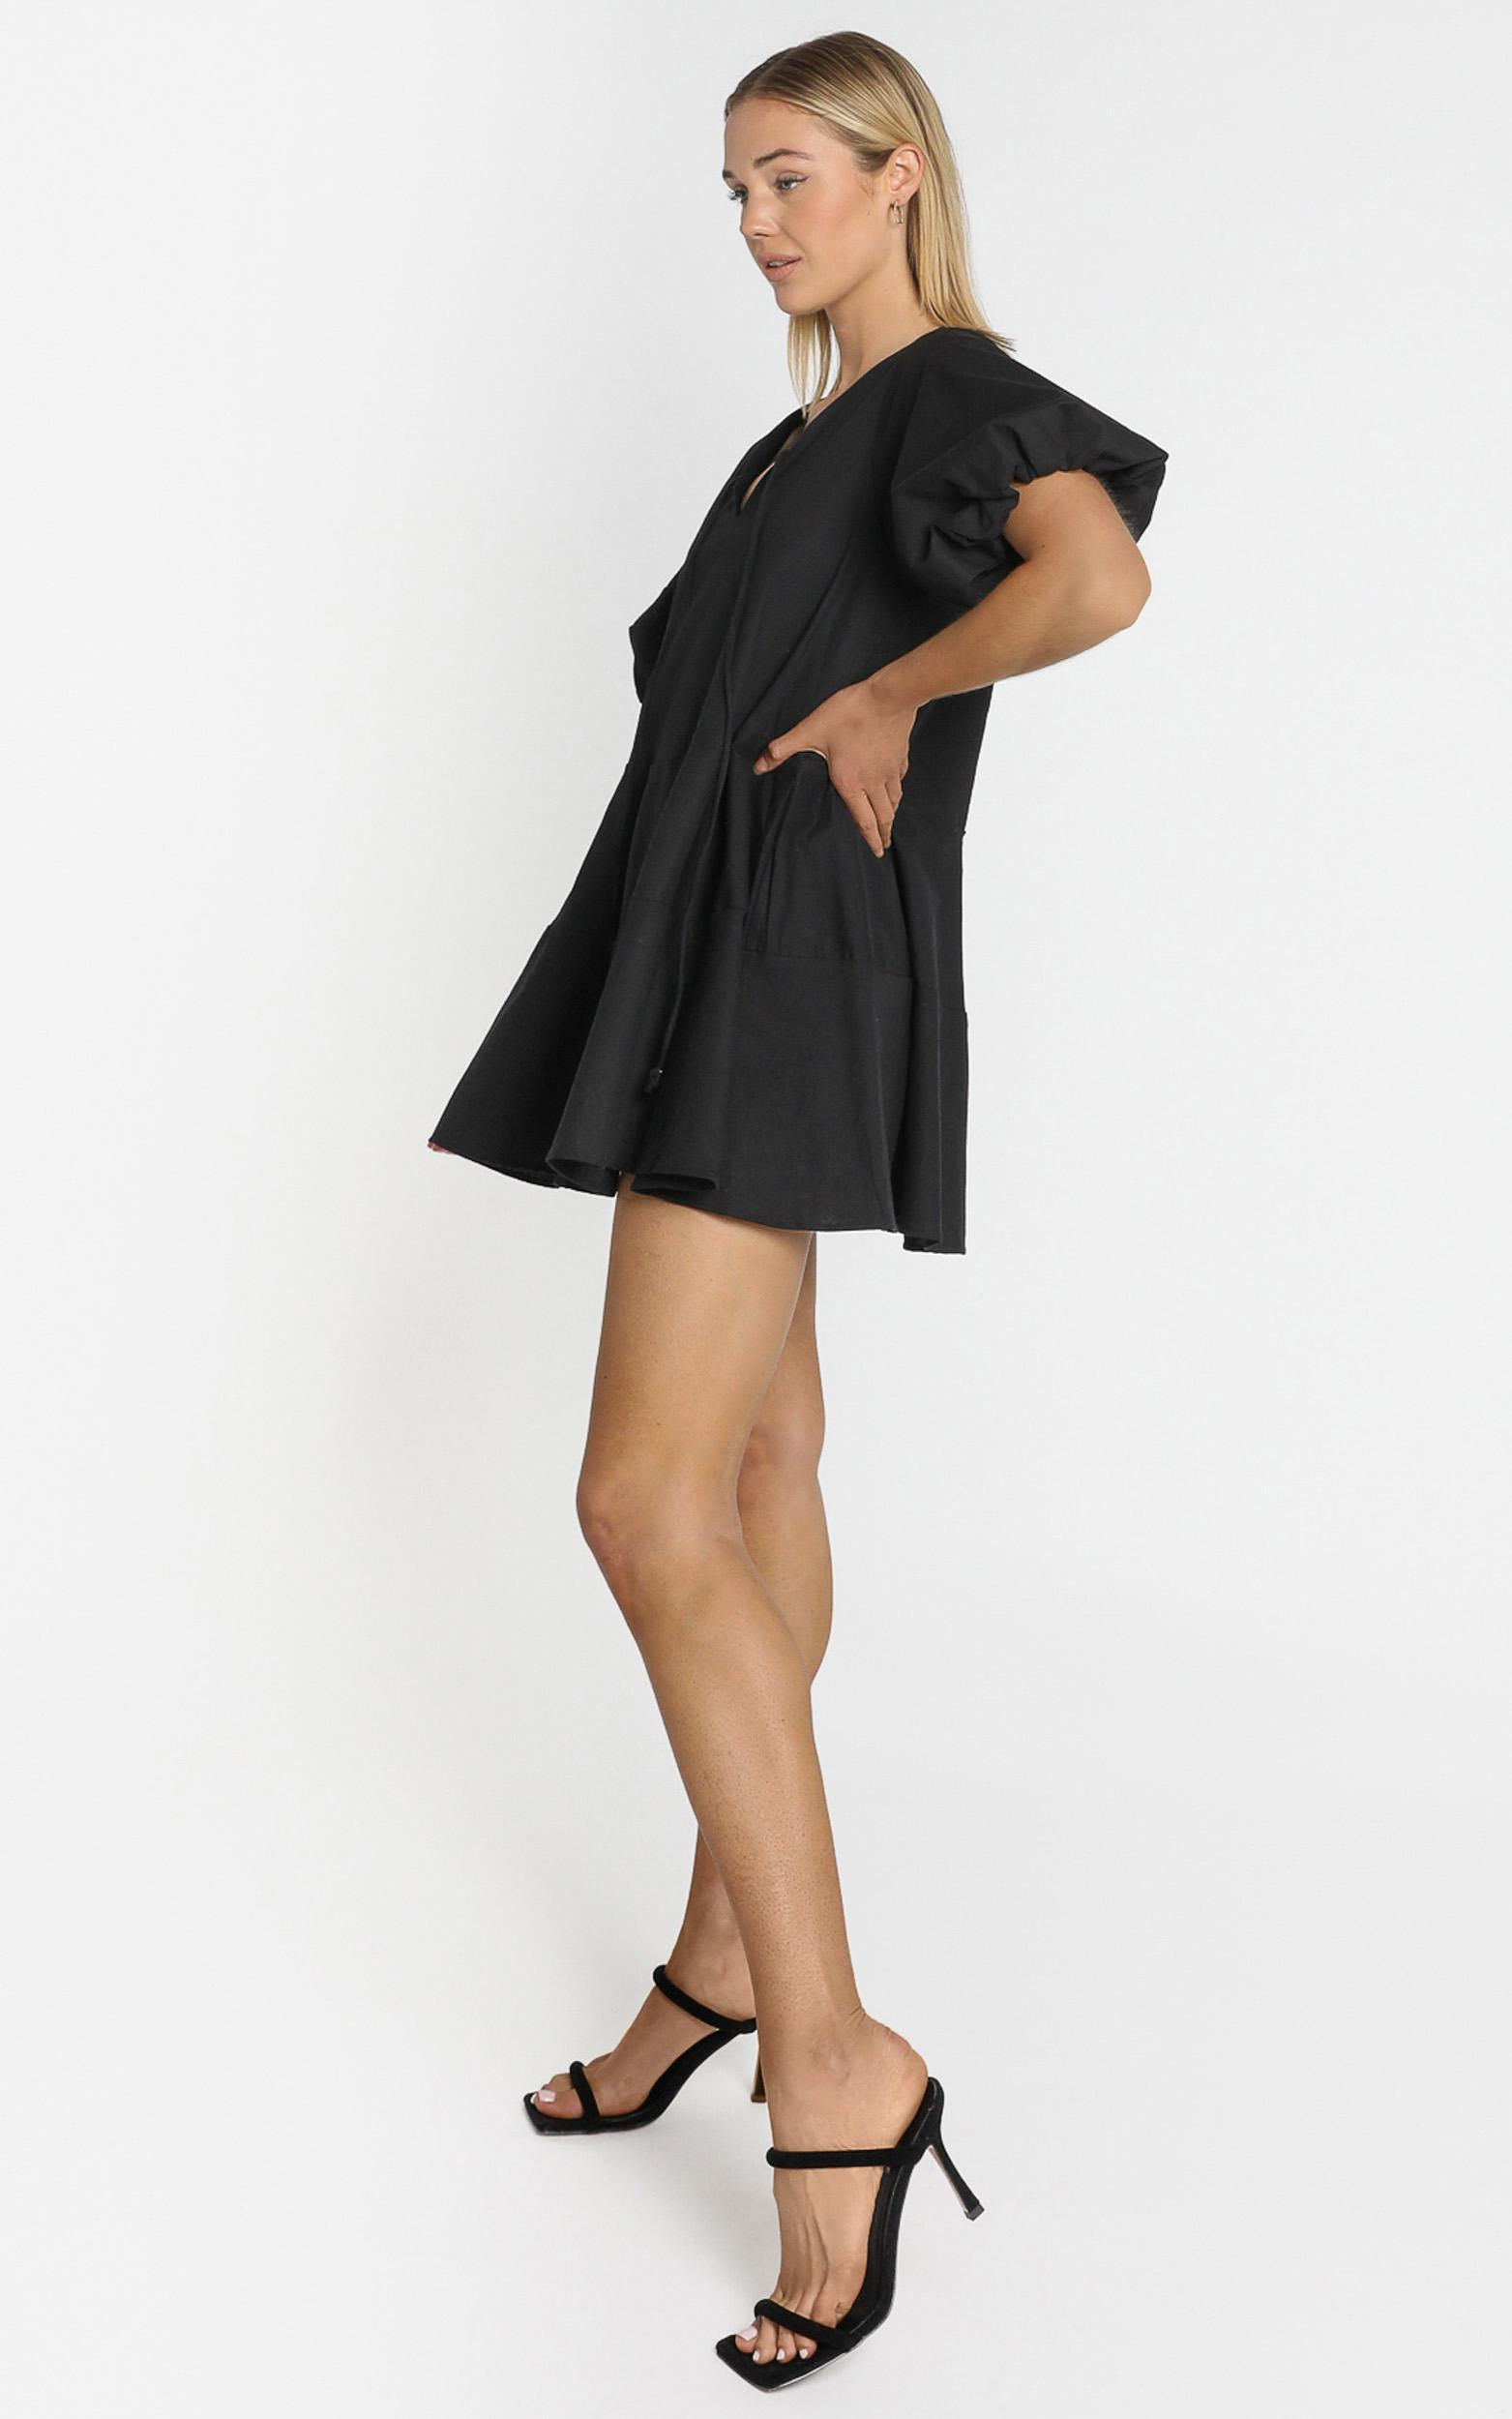 Krizza Mini Dress in black linen look - 4 (XXS), Black, hi-res image number null